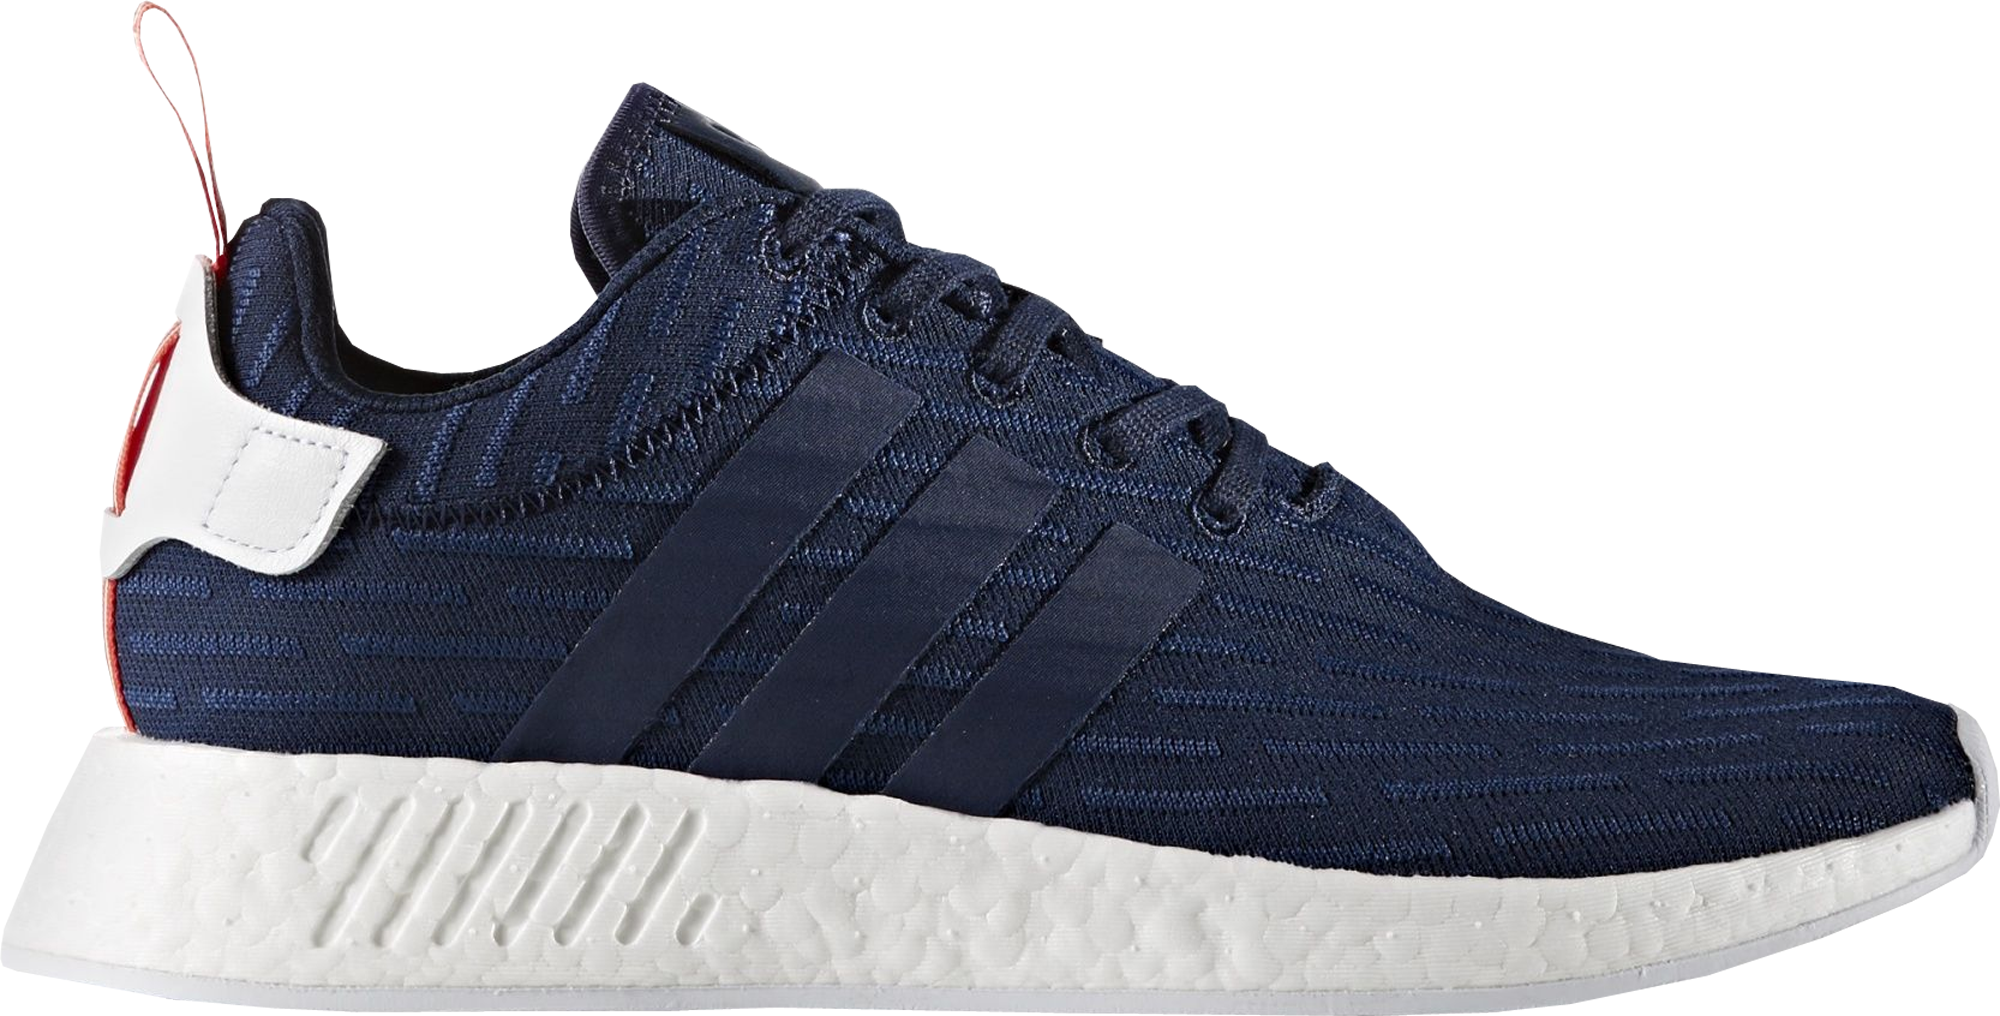 Adidas Nmd R2 Primeknit Navy White Bb2952 TopDeals